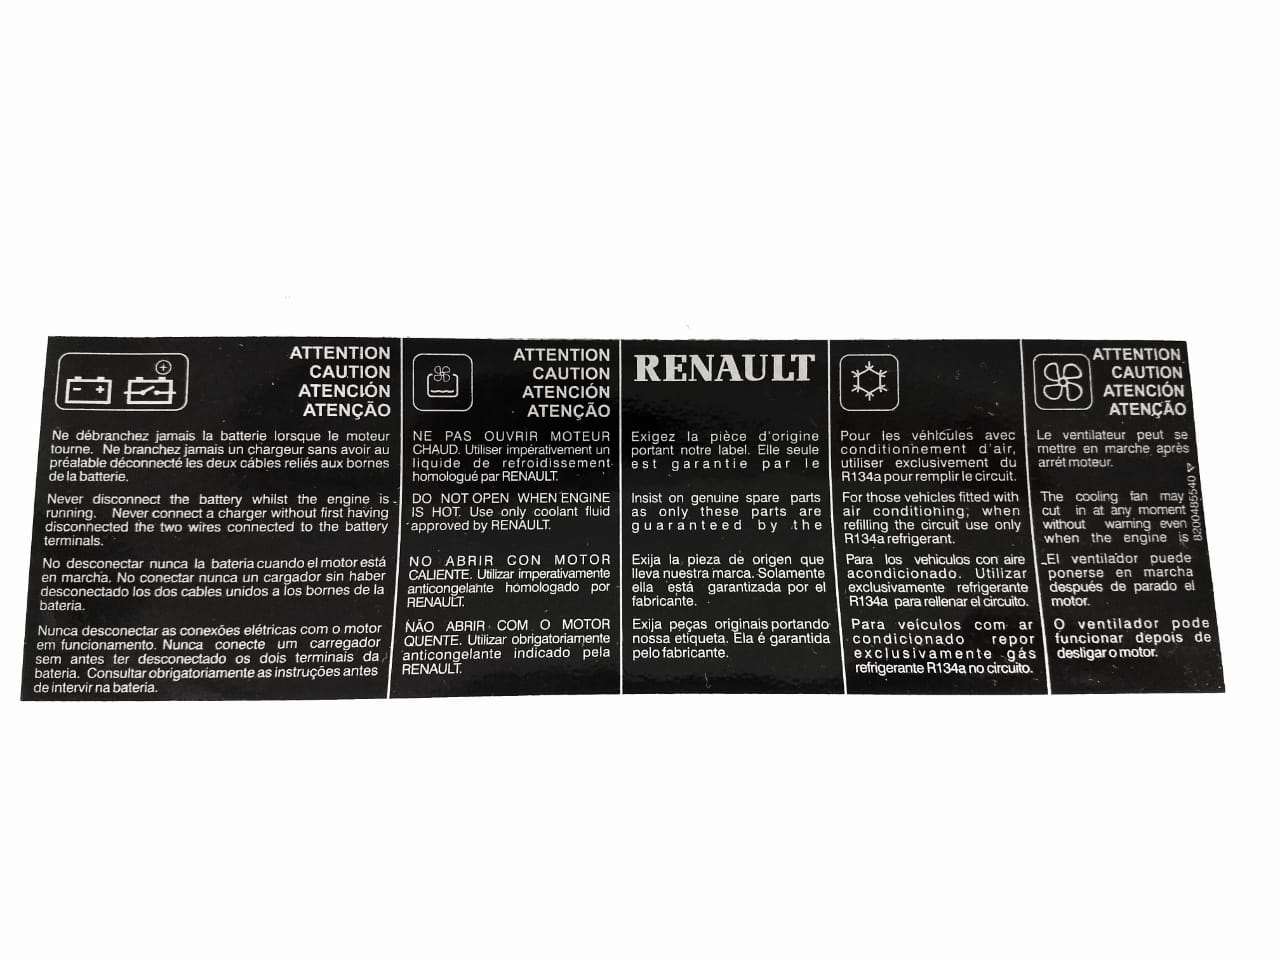 Etiqueta do painel frontal - Emblemas - PC - Renault Clio